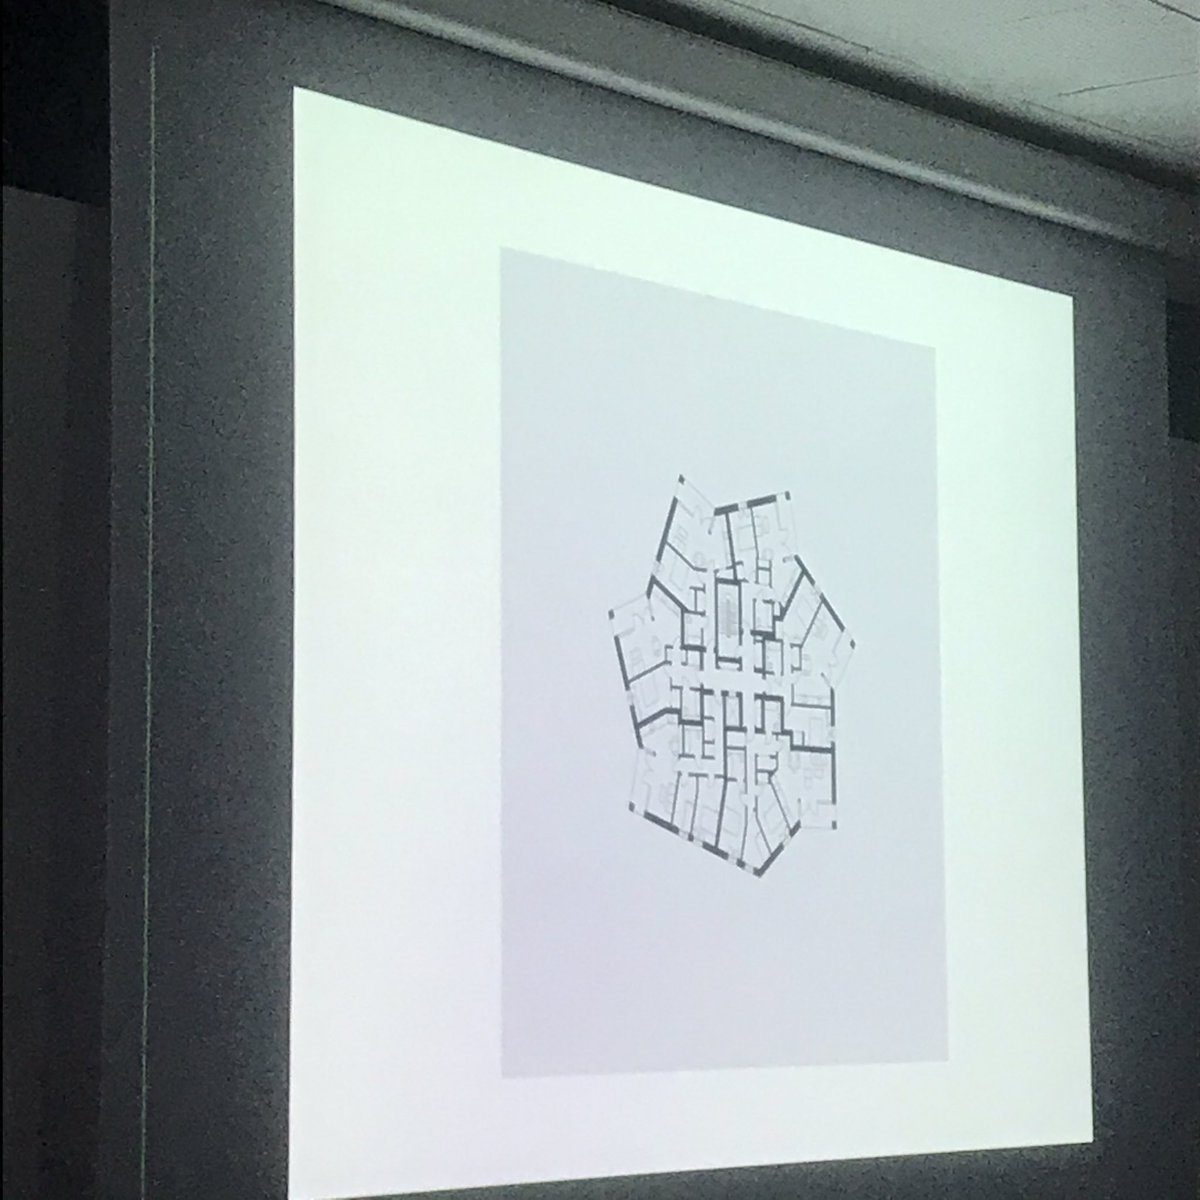 A fantastic lecture last night by @duggan_mc following her thoughts on practice! Beautiful work, fascinating insights and a full house. @artsbrighton @UoBOutreach #SoAD